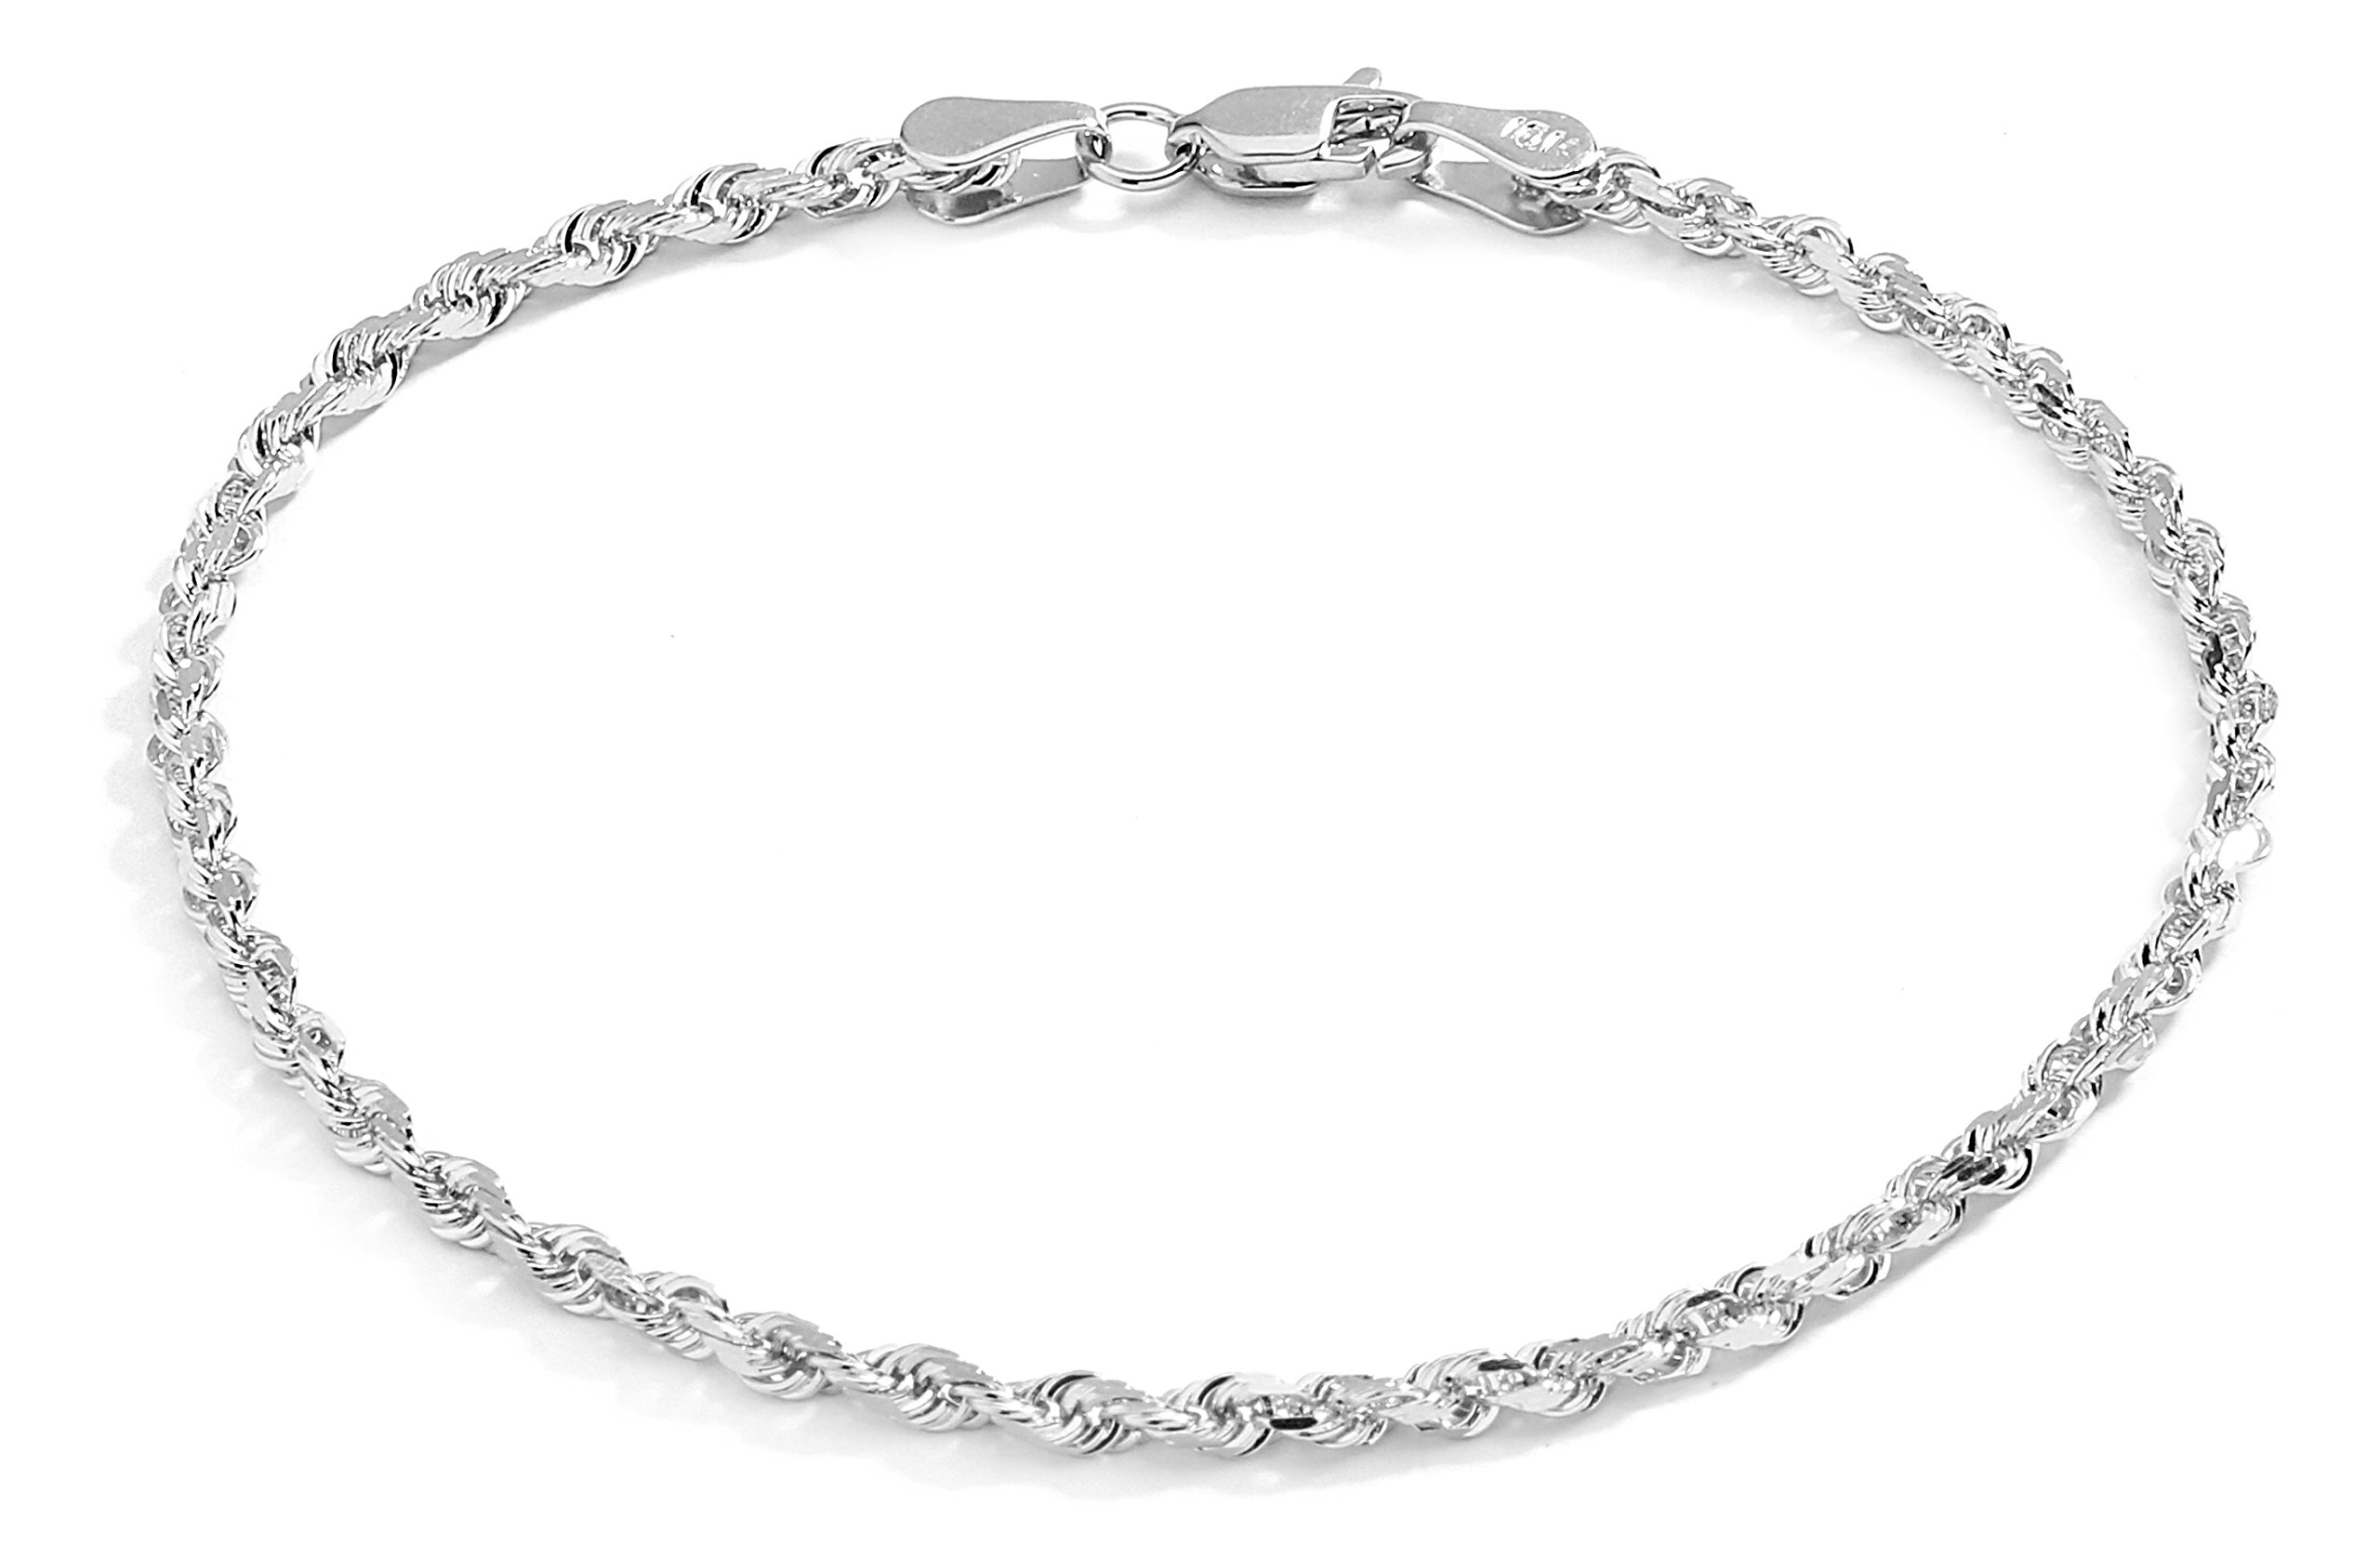 10 Inch Solid Diamond Cut Rope Chain Ankle Bracelet Anklet - 10k White Gold - 2.5mm (0.1'')